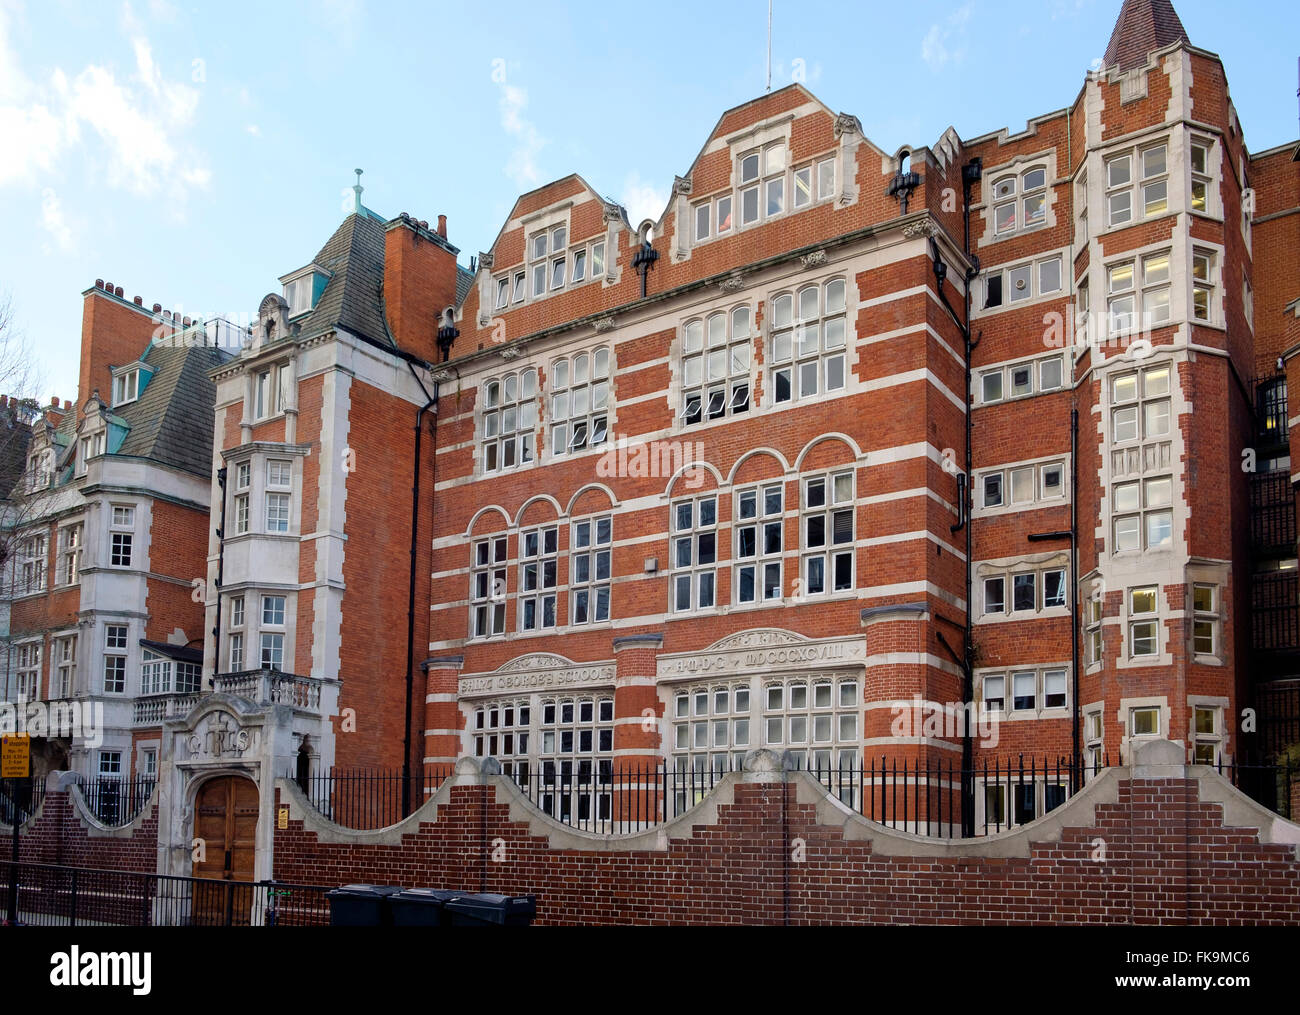 London, UK - 24 February 2016: St George's School, a state Church of England primary school for girls and boys - Stock Image